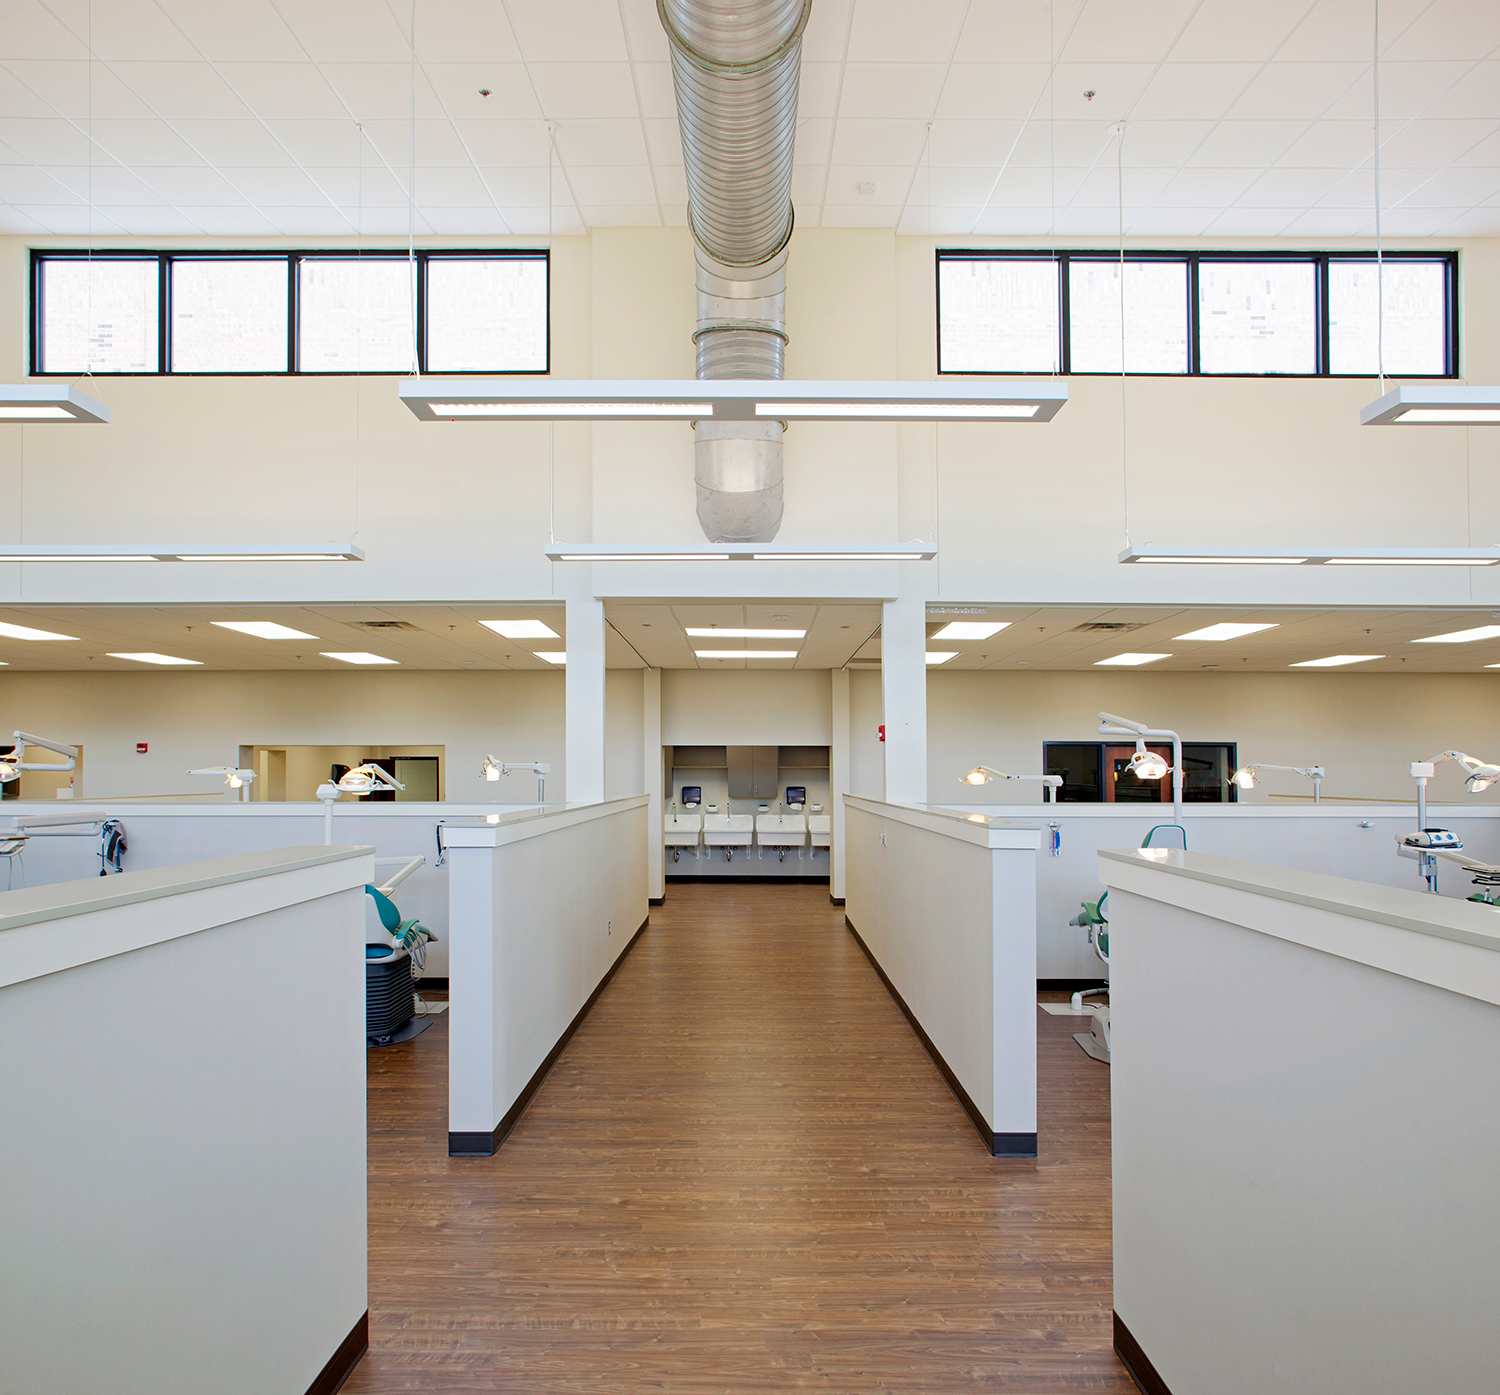 Savannah-Tech-Dental-Lab-overview-Education Construction-Benning-Construction-Company